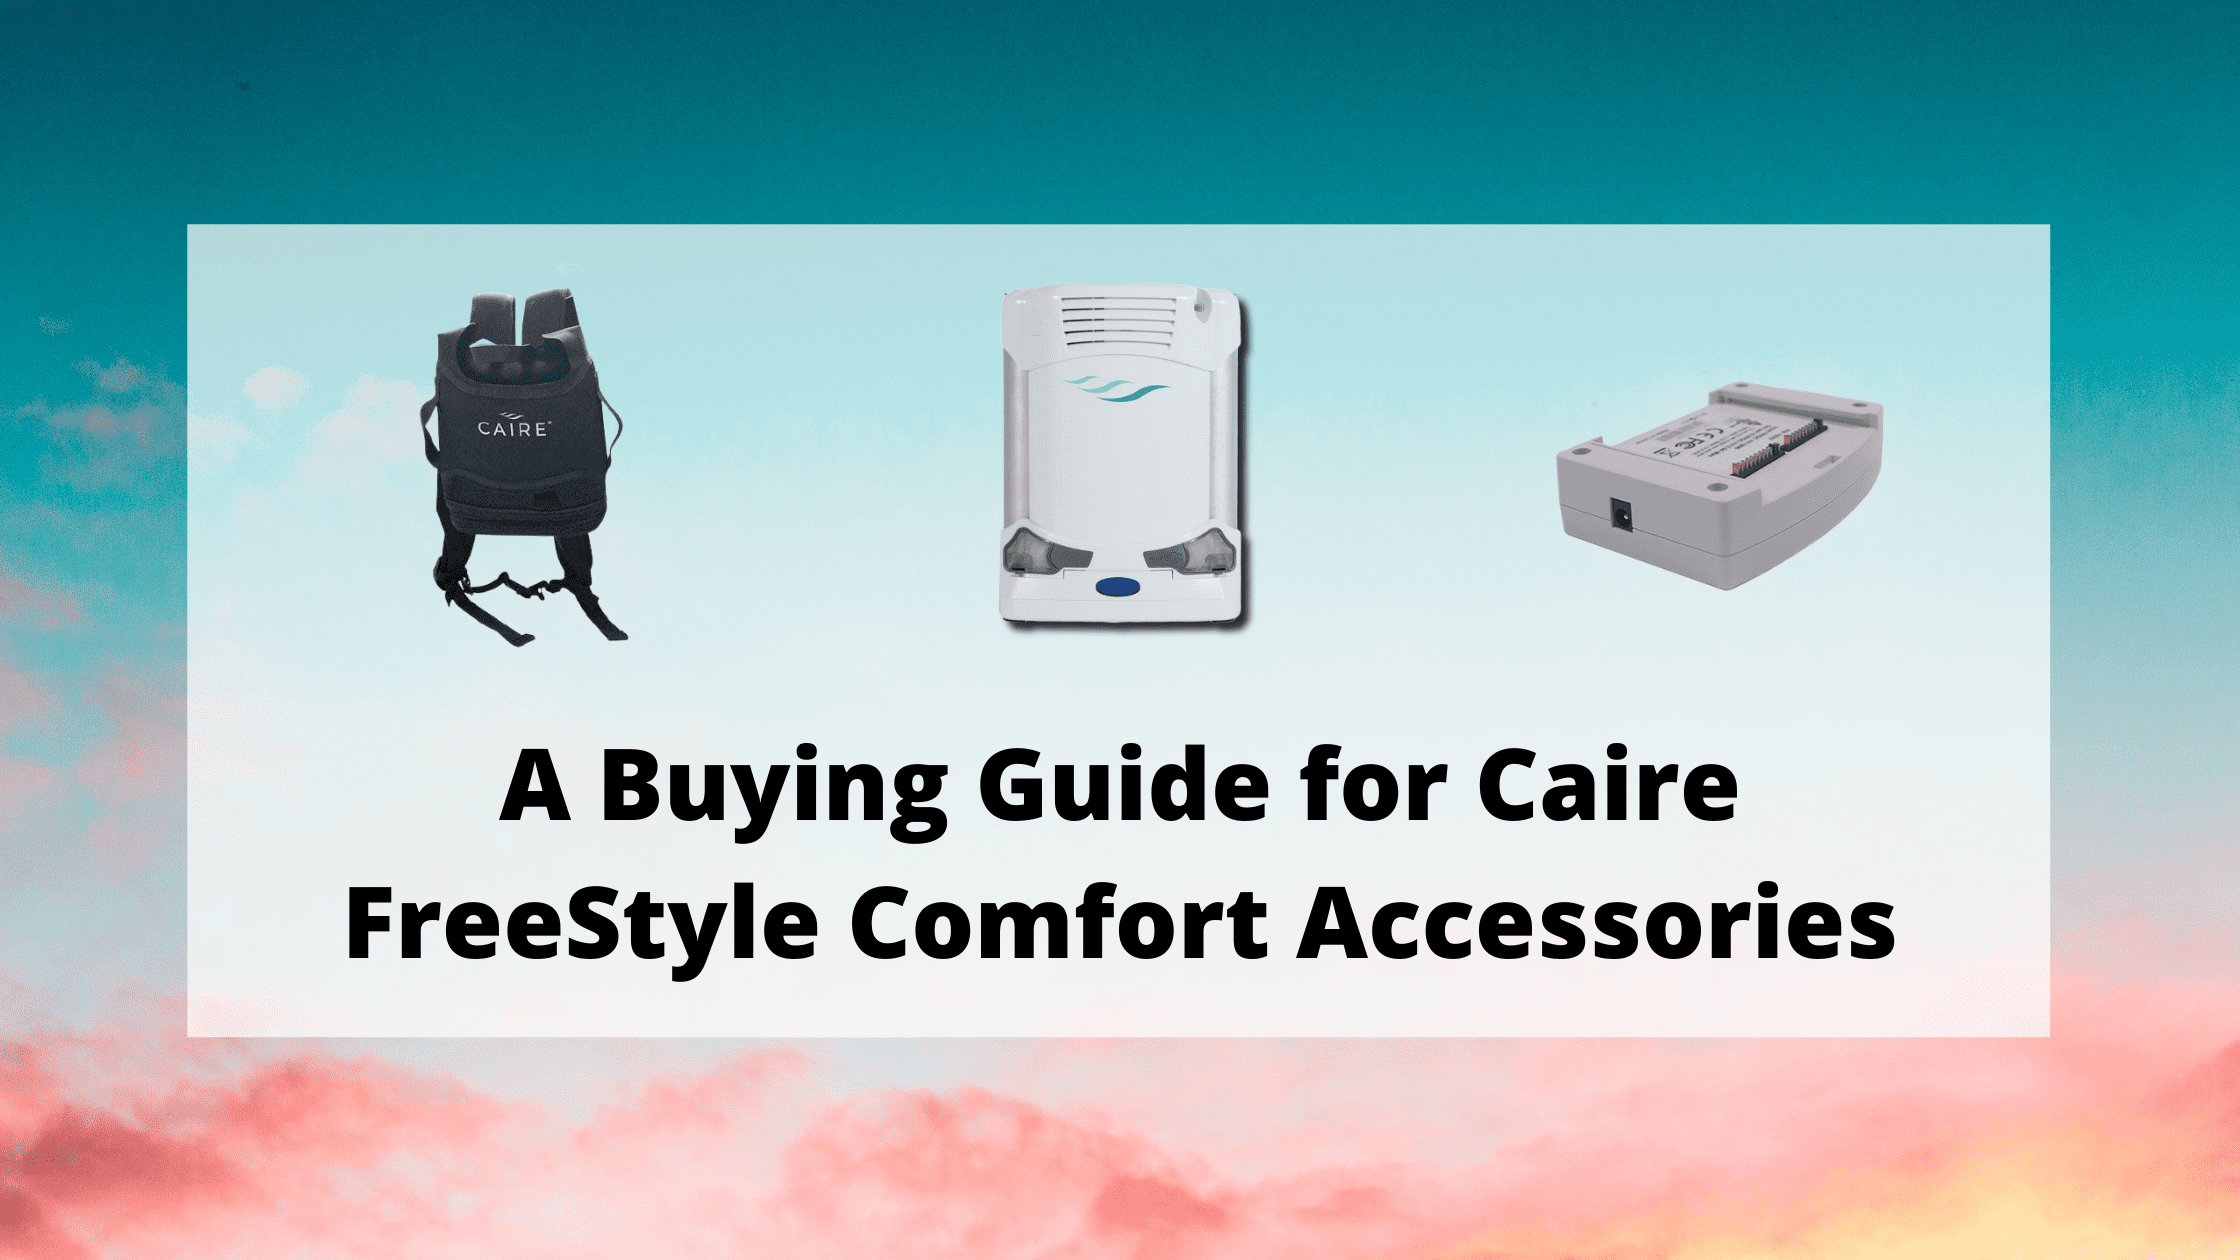 A Buying Guide for Caire FreeStyle Comfort Accessories